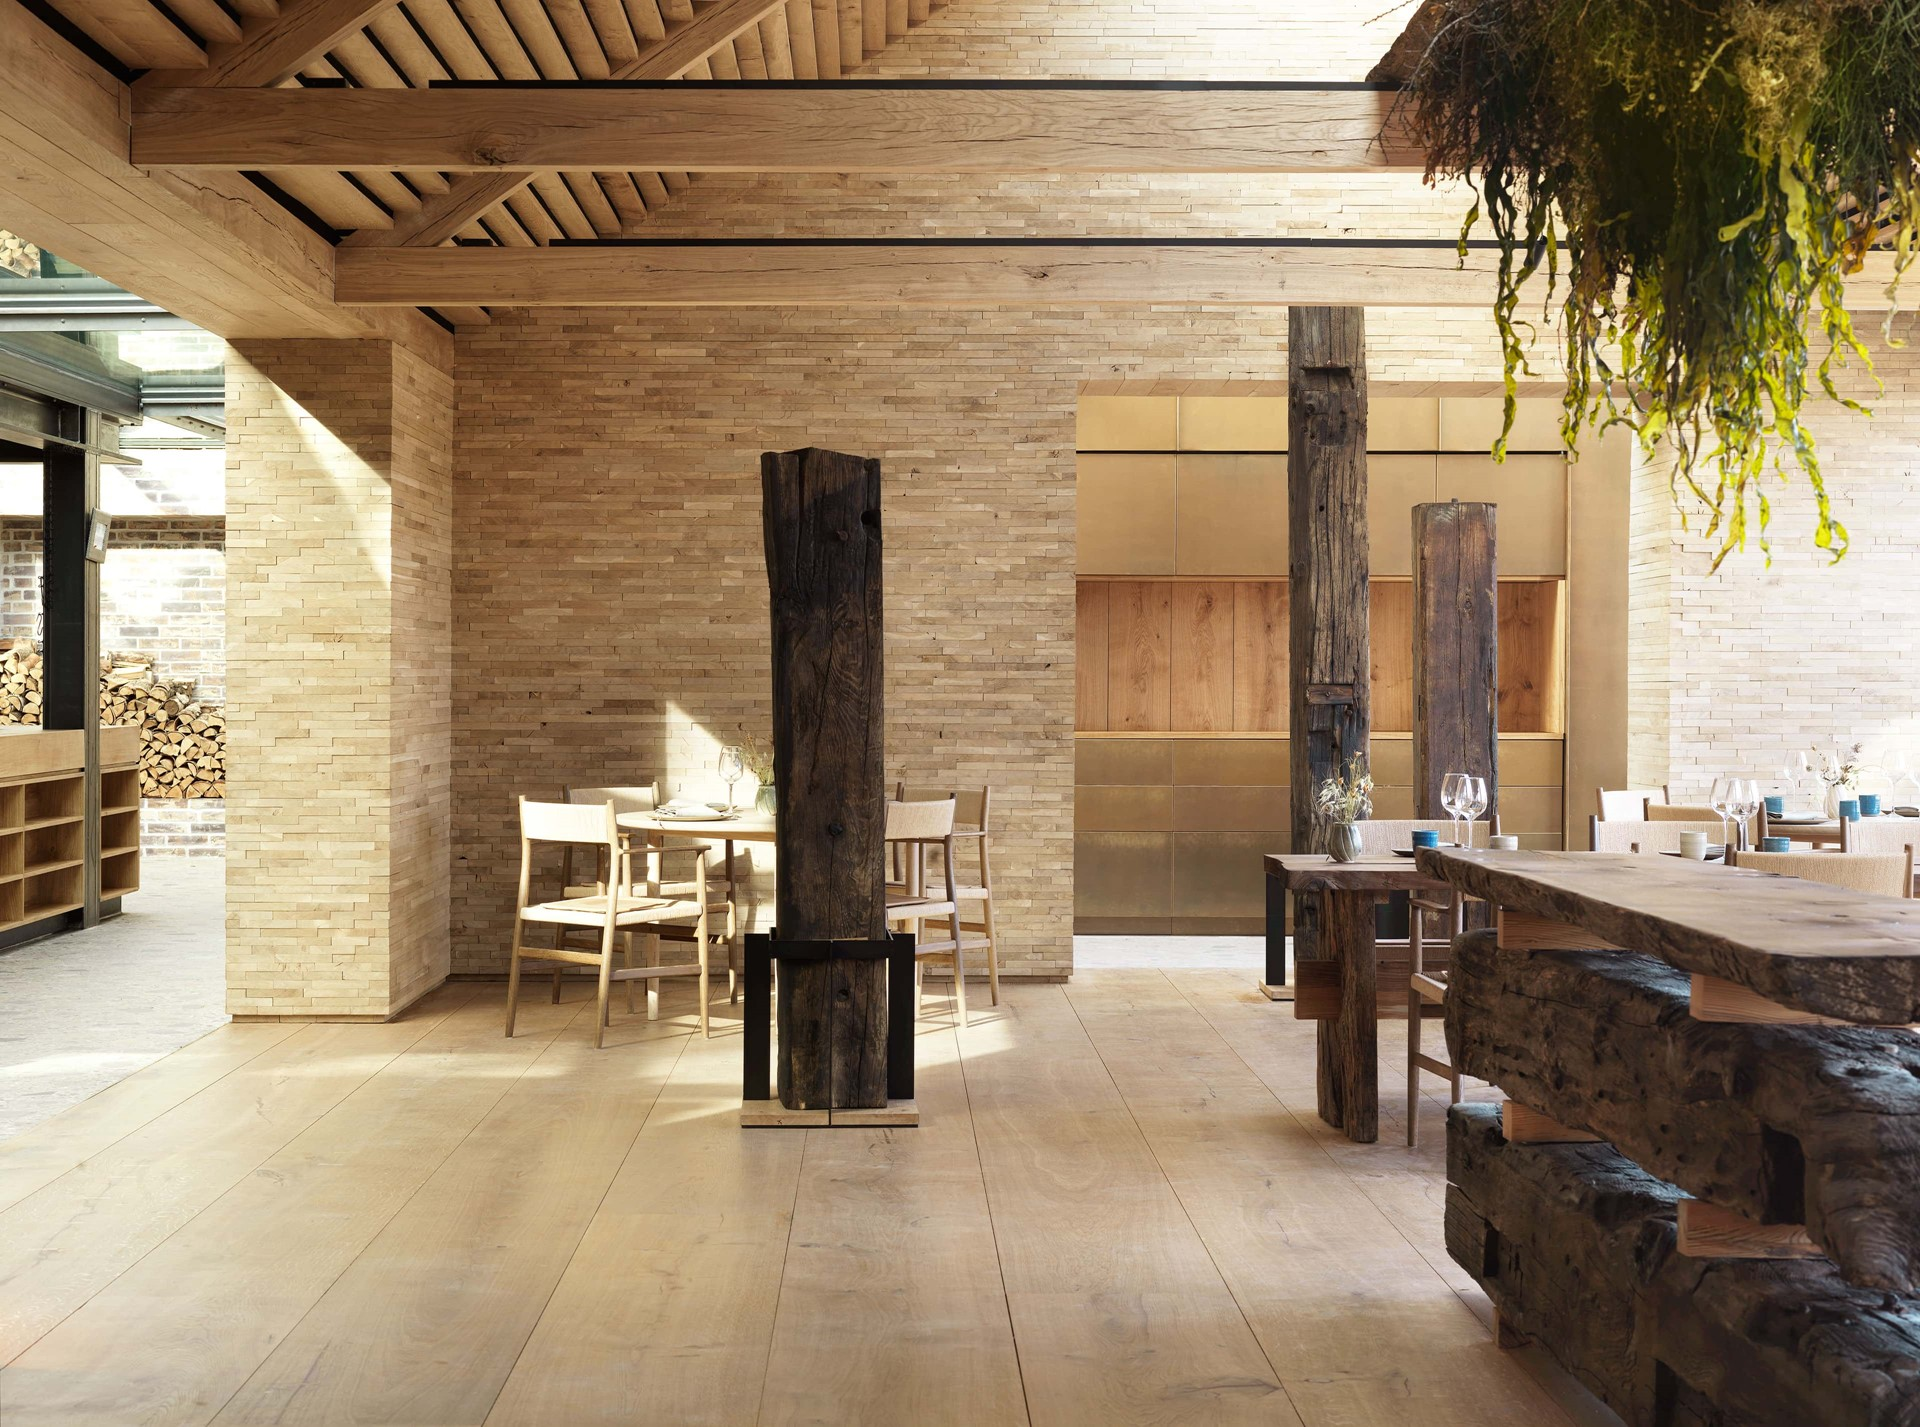 wide oak planks heartoak noma main dining studio david thulstrup dinesen.jpg